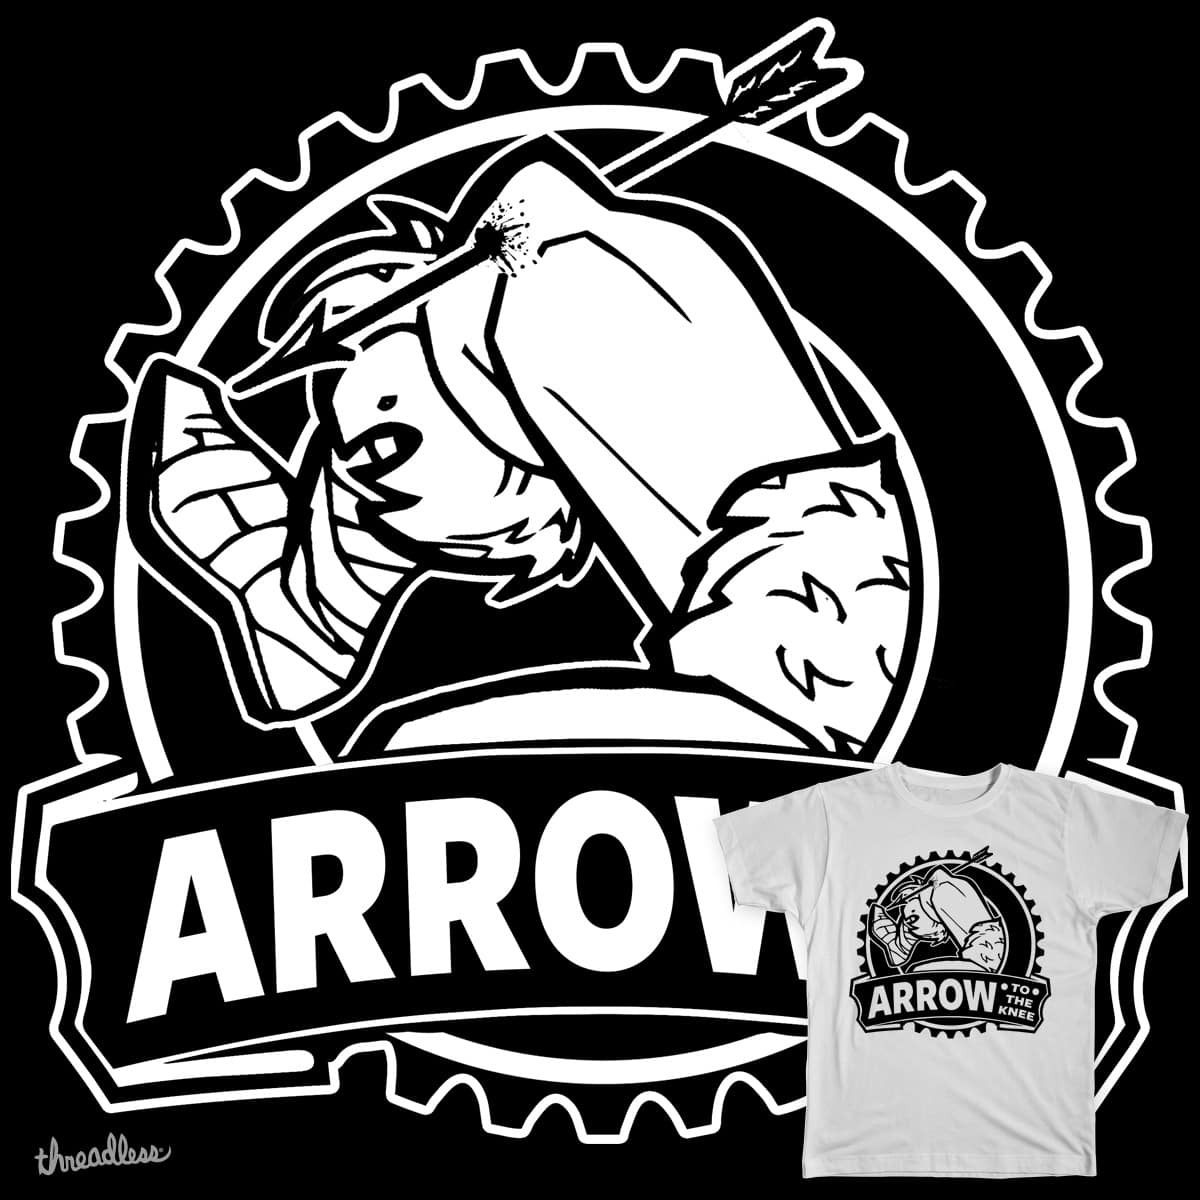 Arrow To The Knee by Immortalized on Threadless